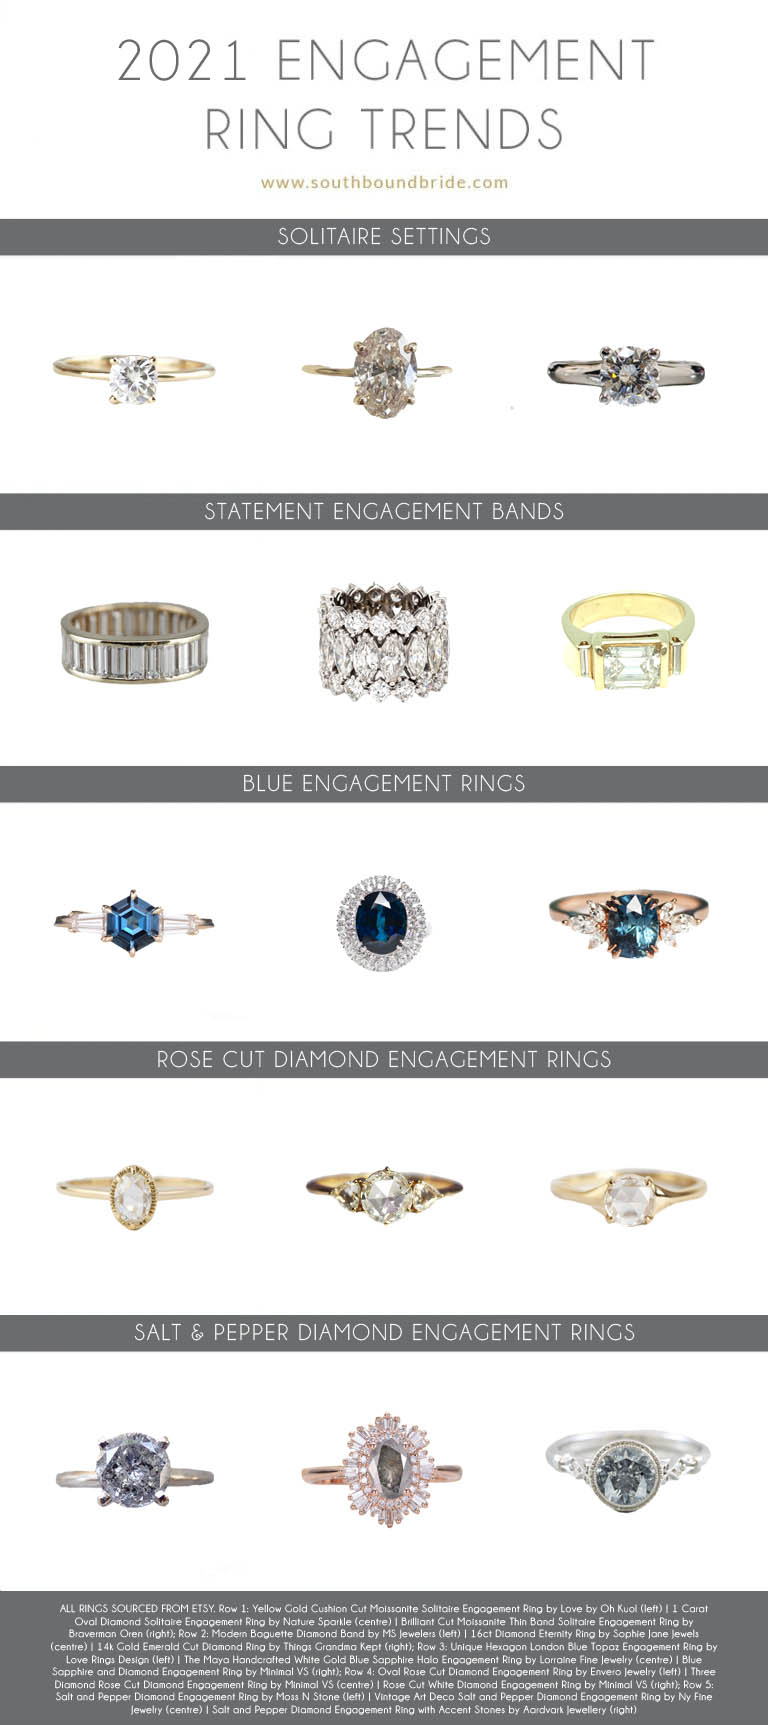 2021 Engagement Ring Trends